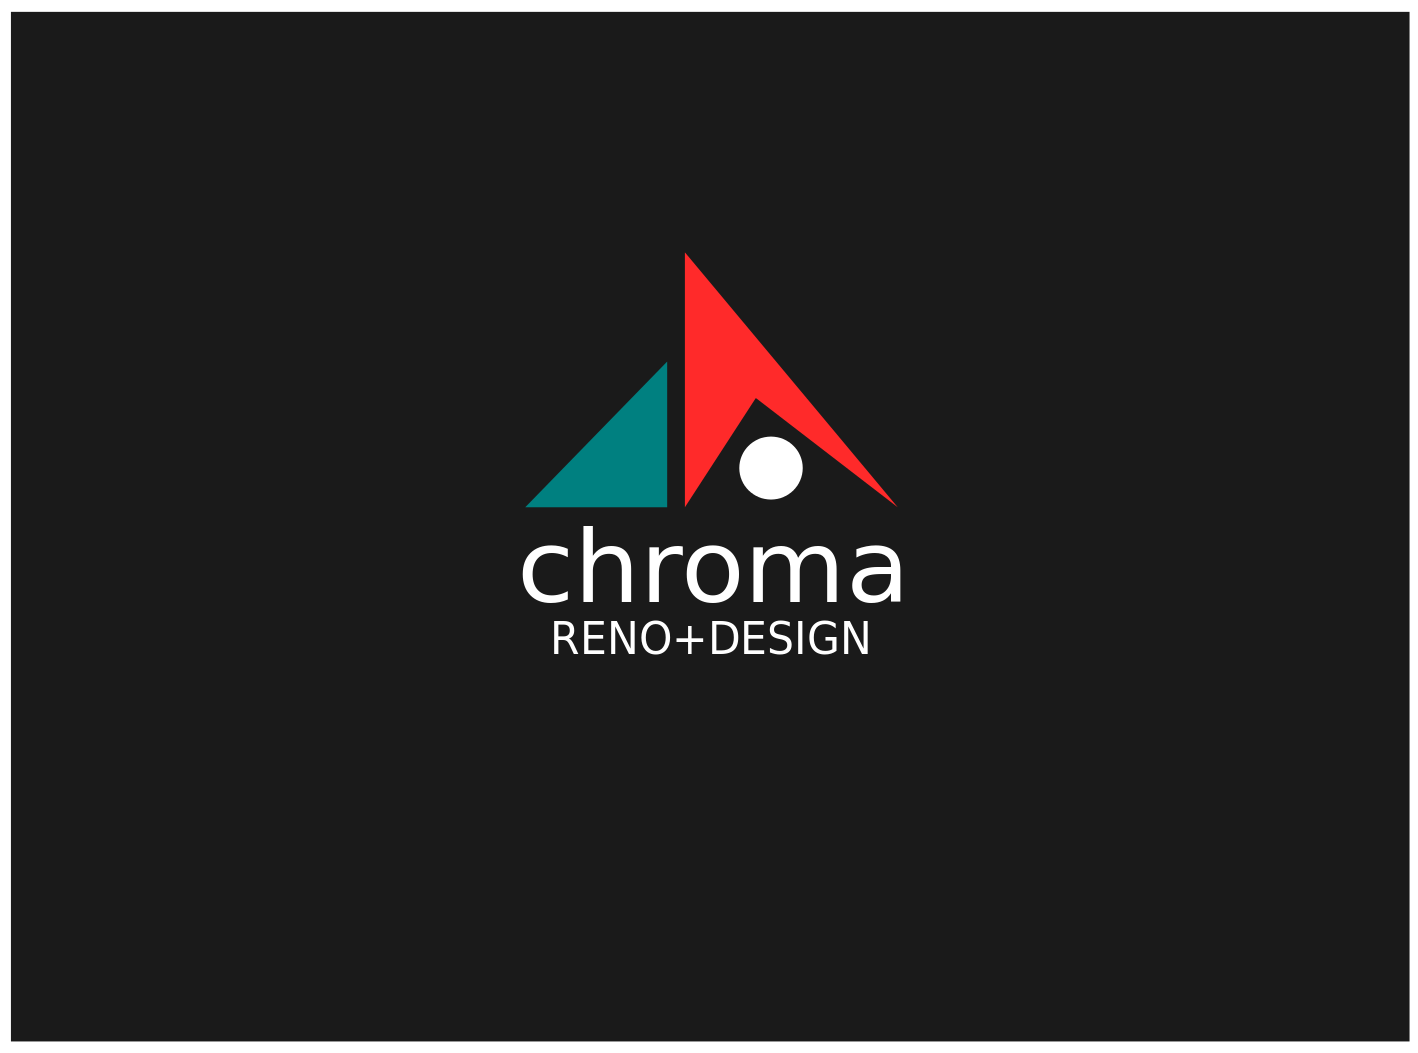 Logo Design by JaroslavProcka - Entry No. 324 in the Logo Design Contest Inspiring Logo Design for Chroma Reno+Design.